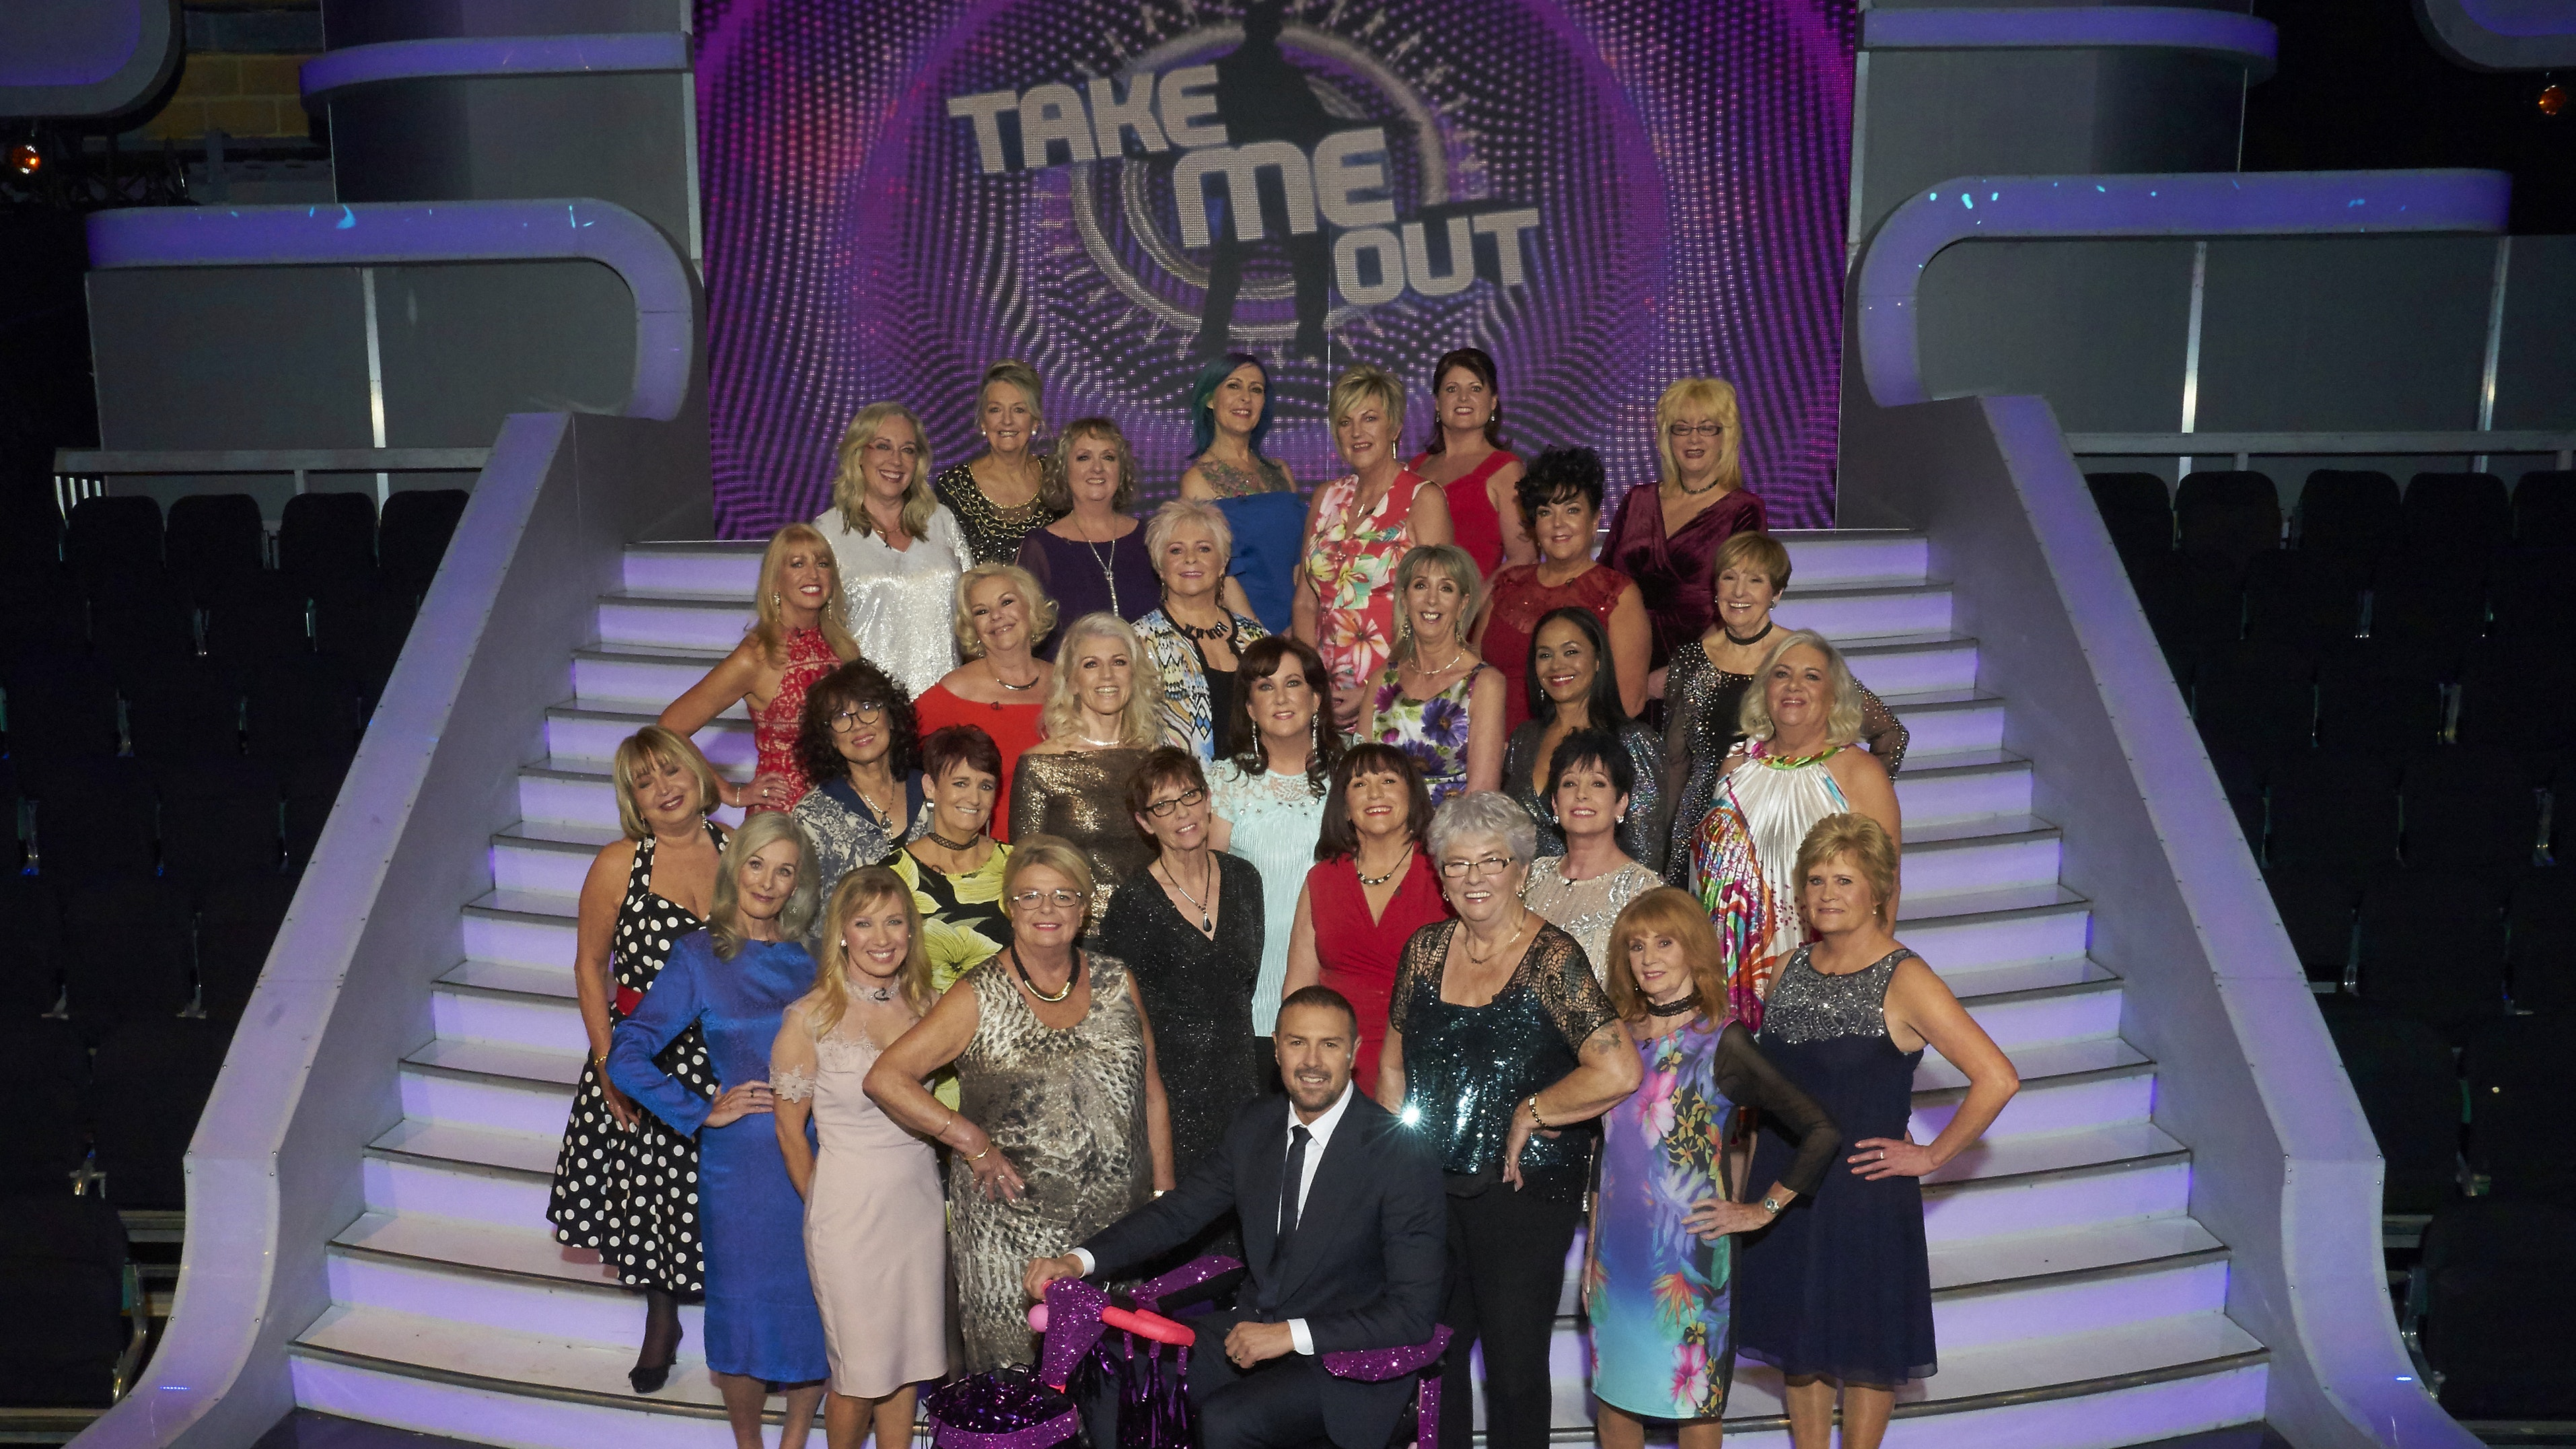 Itv dating show take me out